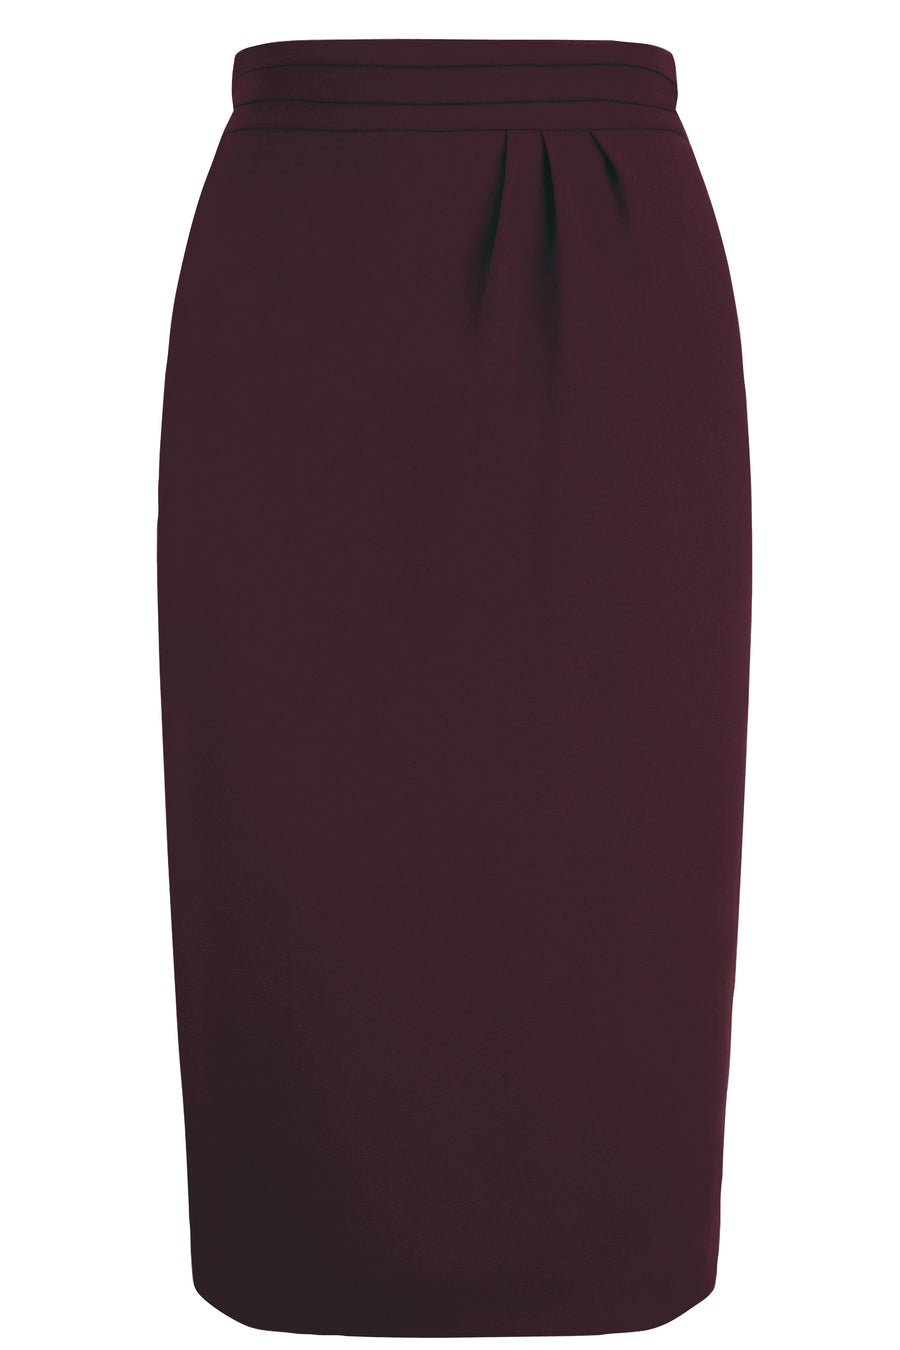 Edith Mulberry Skirt